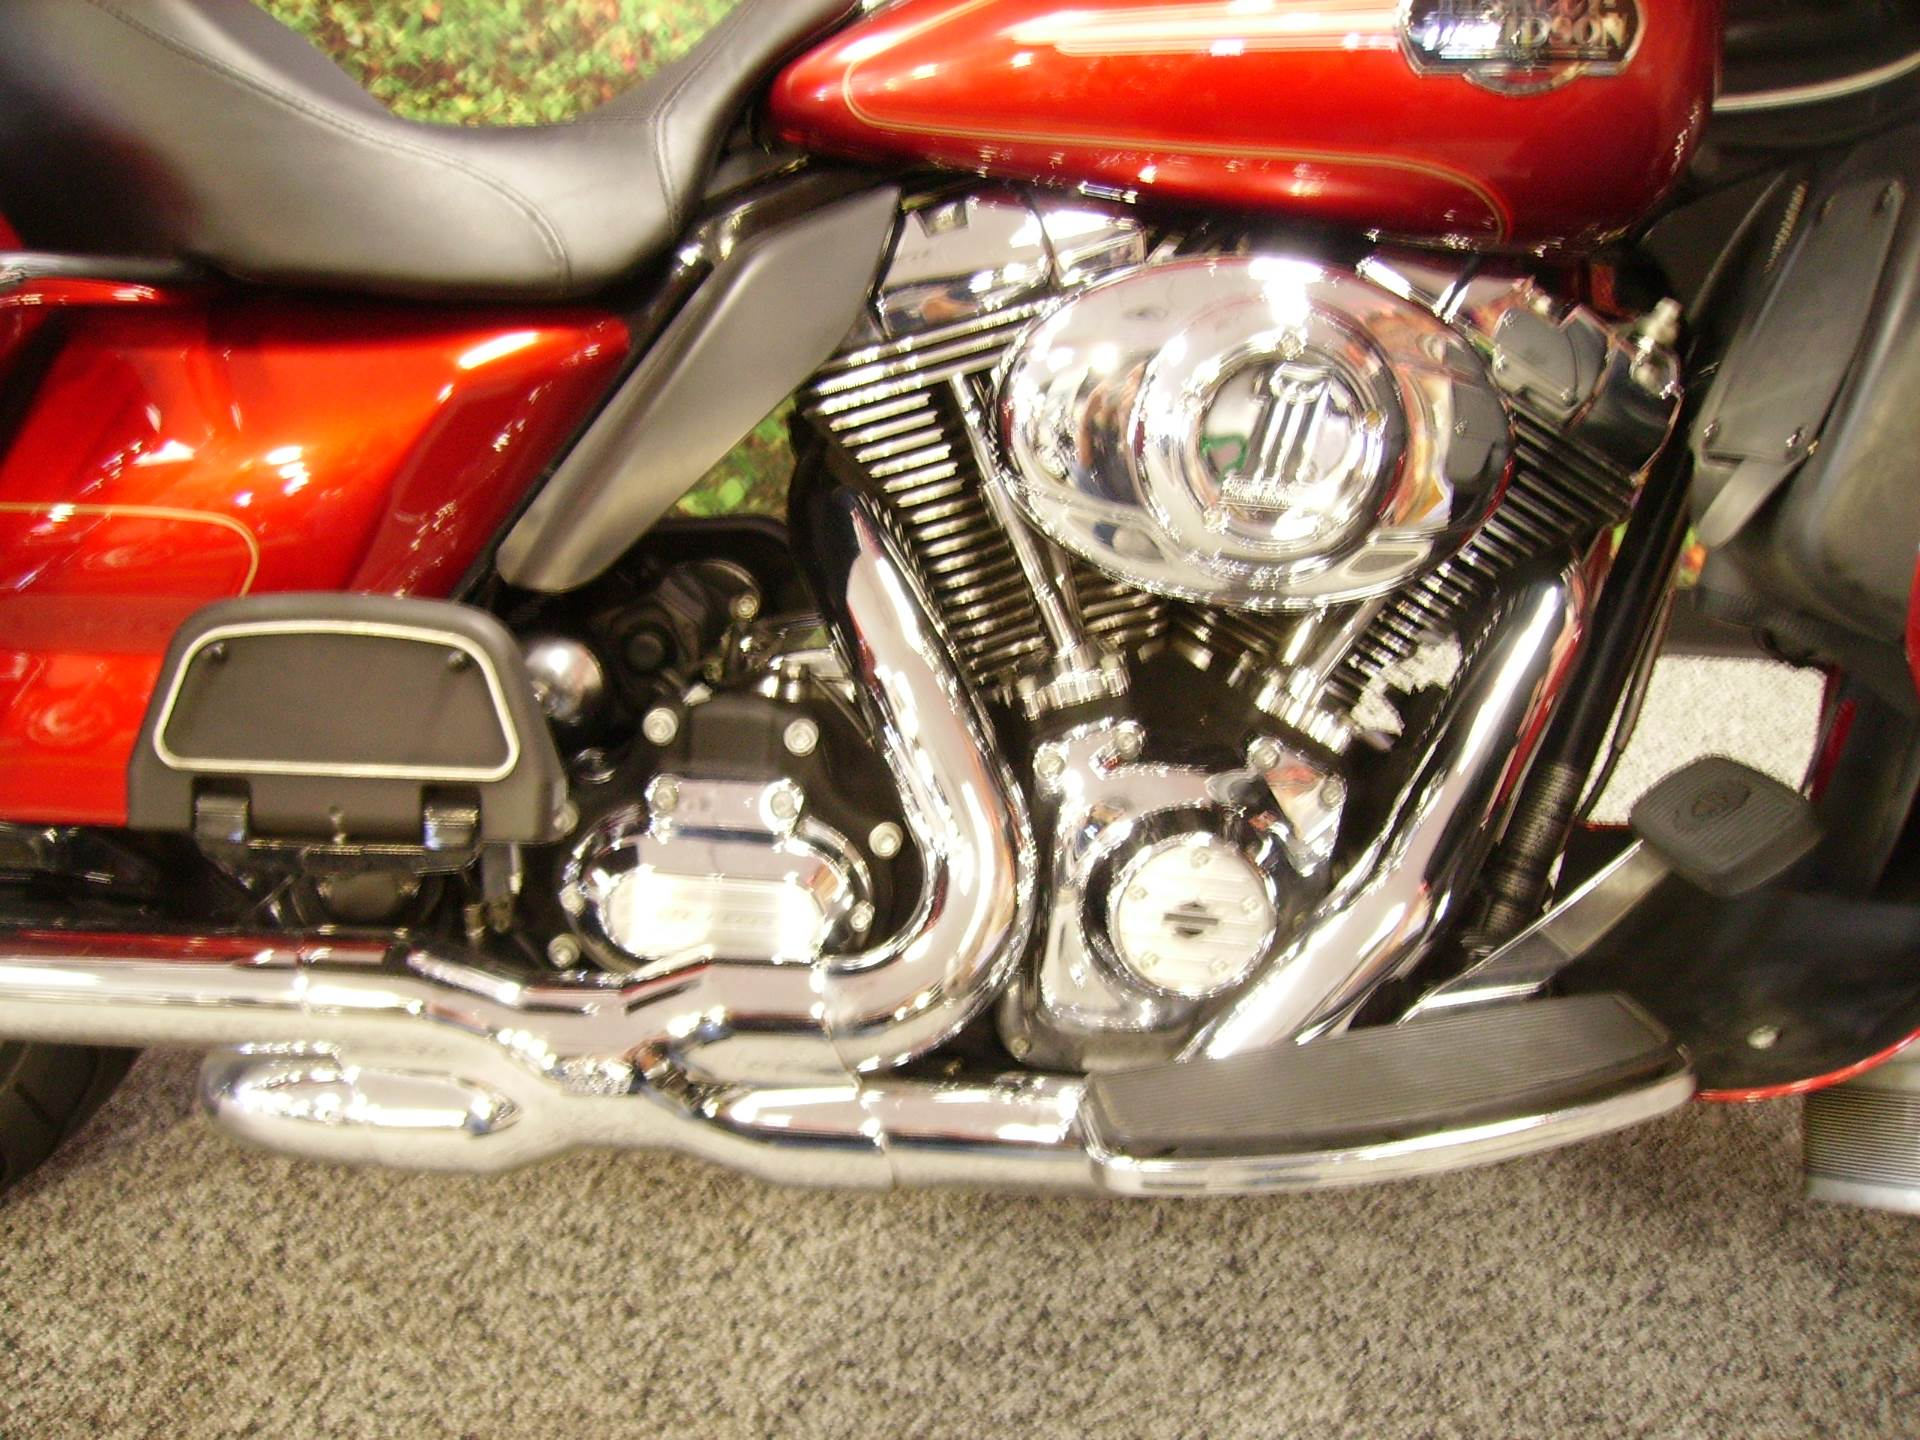 2012 Harley-Davidson Electra Glide® Classic in Knoxville, Tennessee